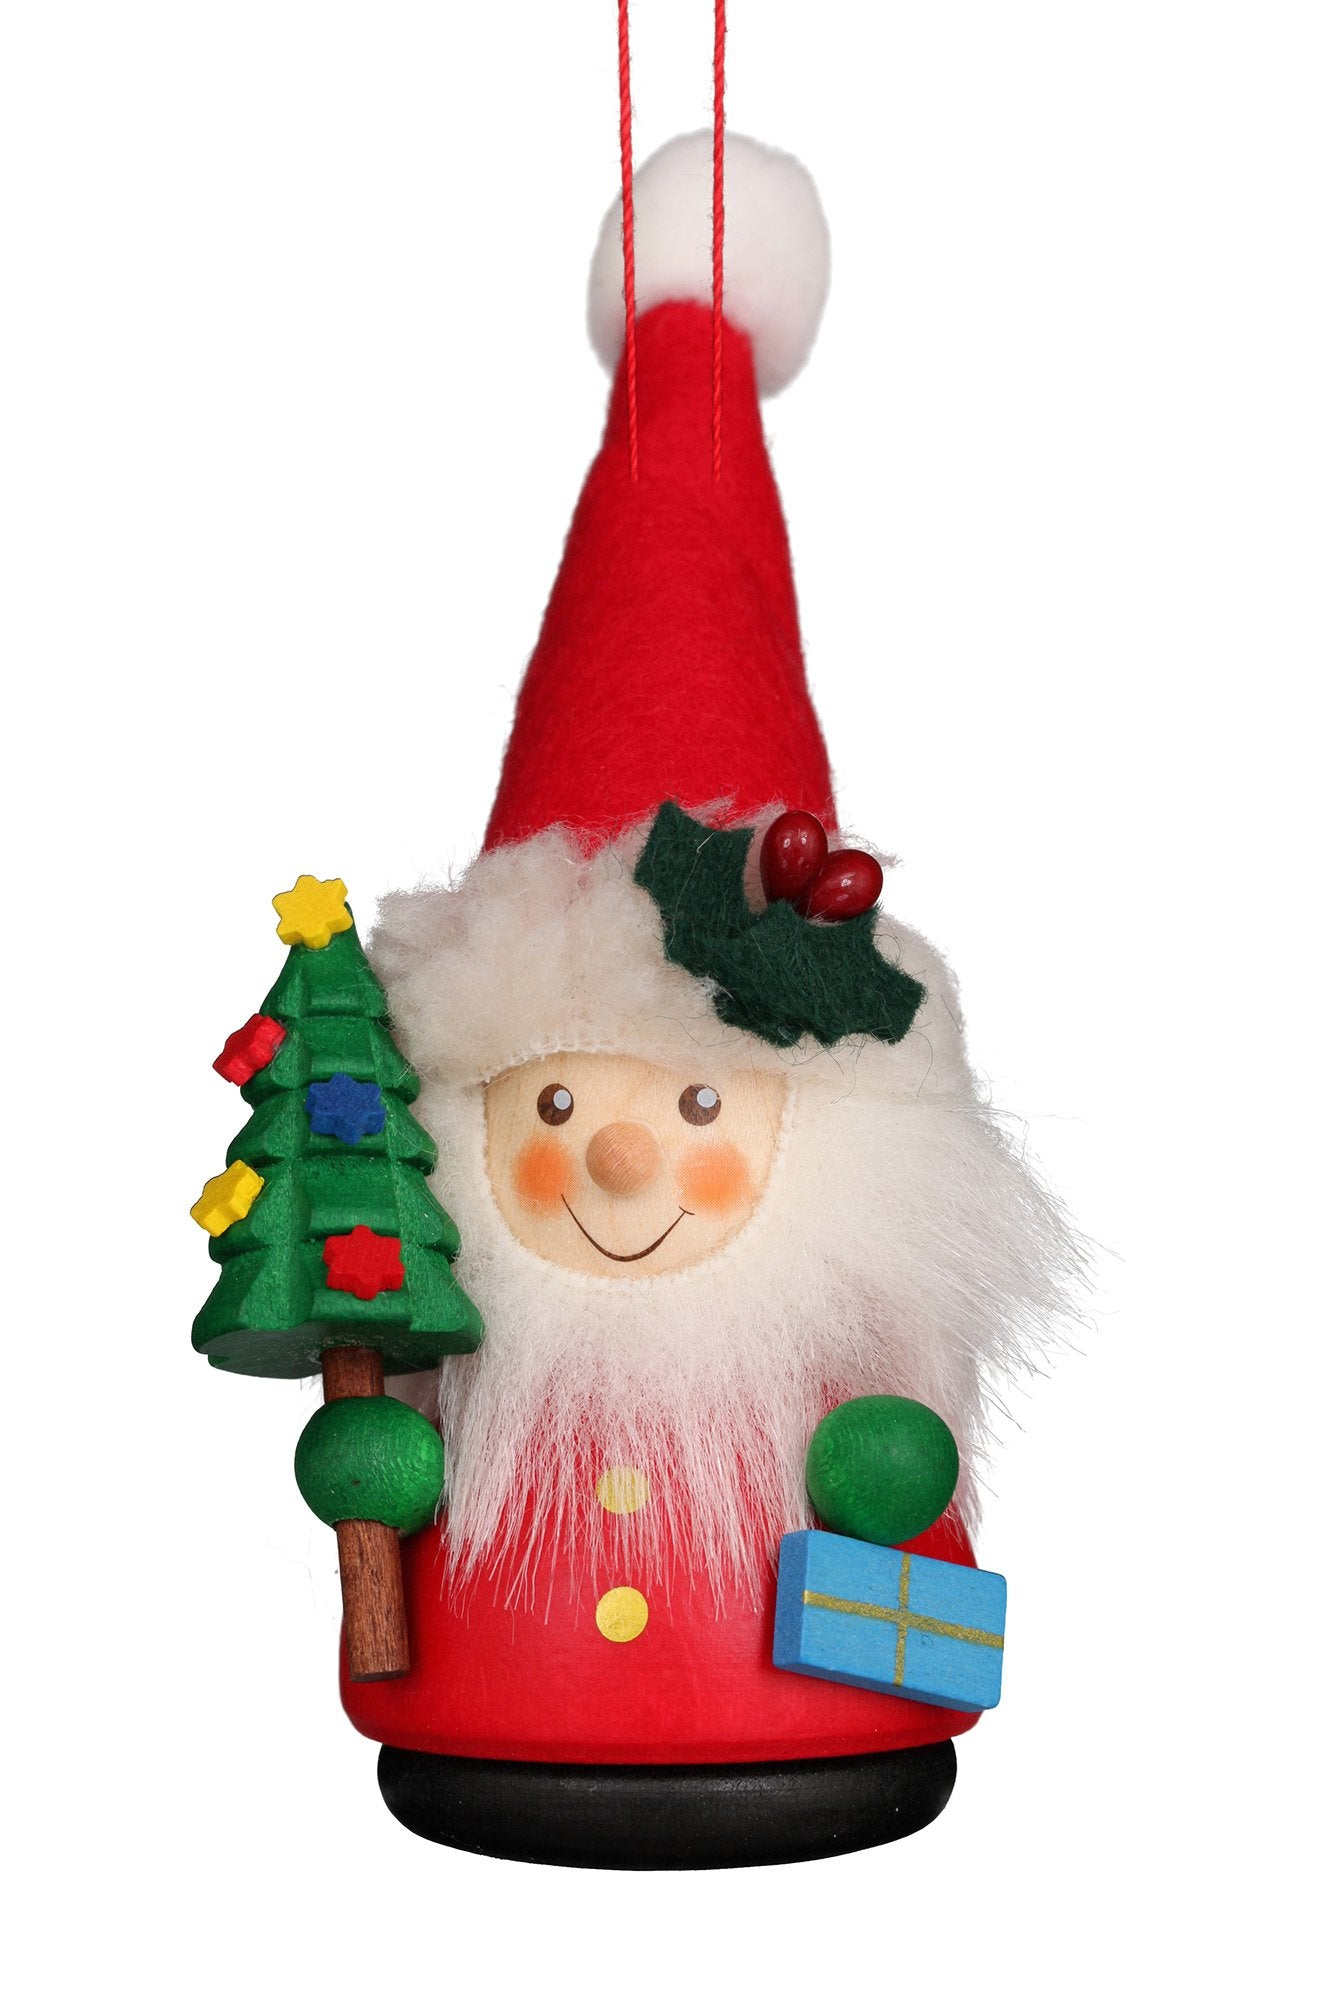 Little gnome Christmas tree decoration - Colourful Santa's helper